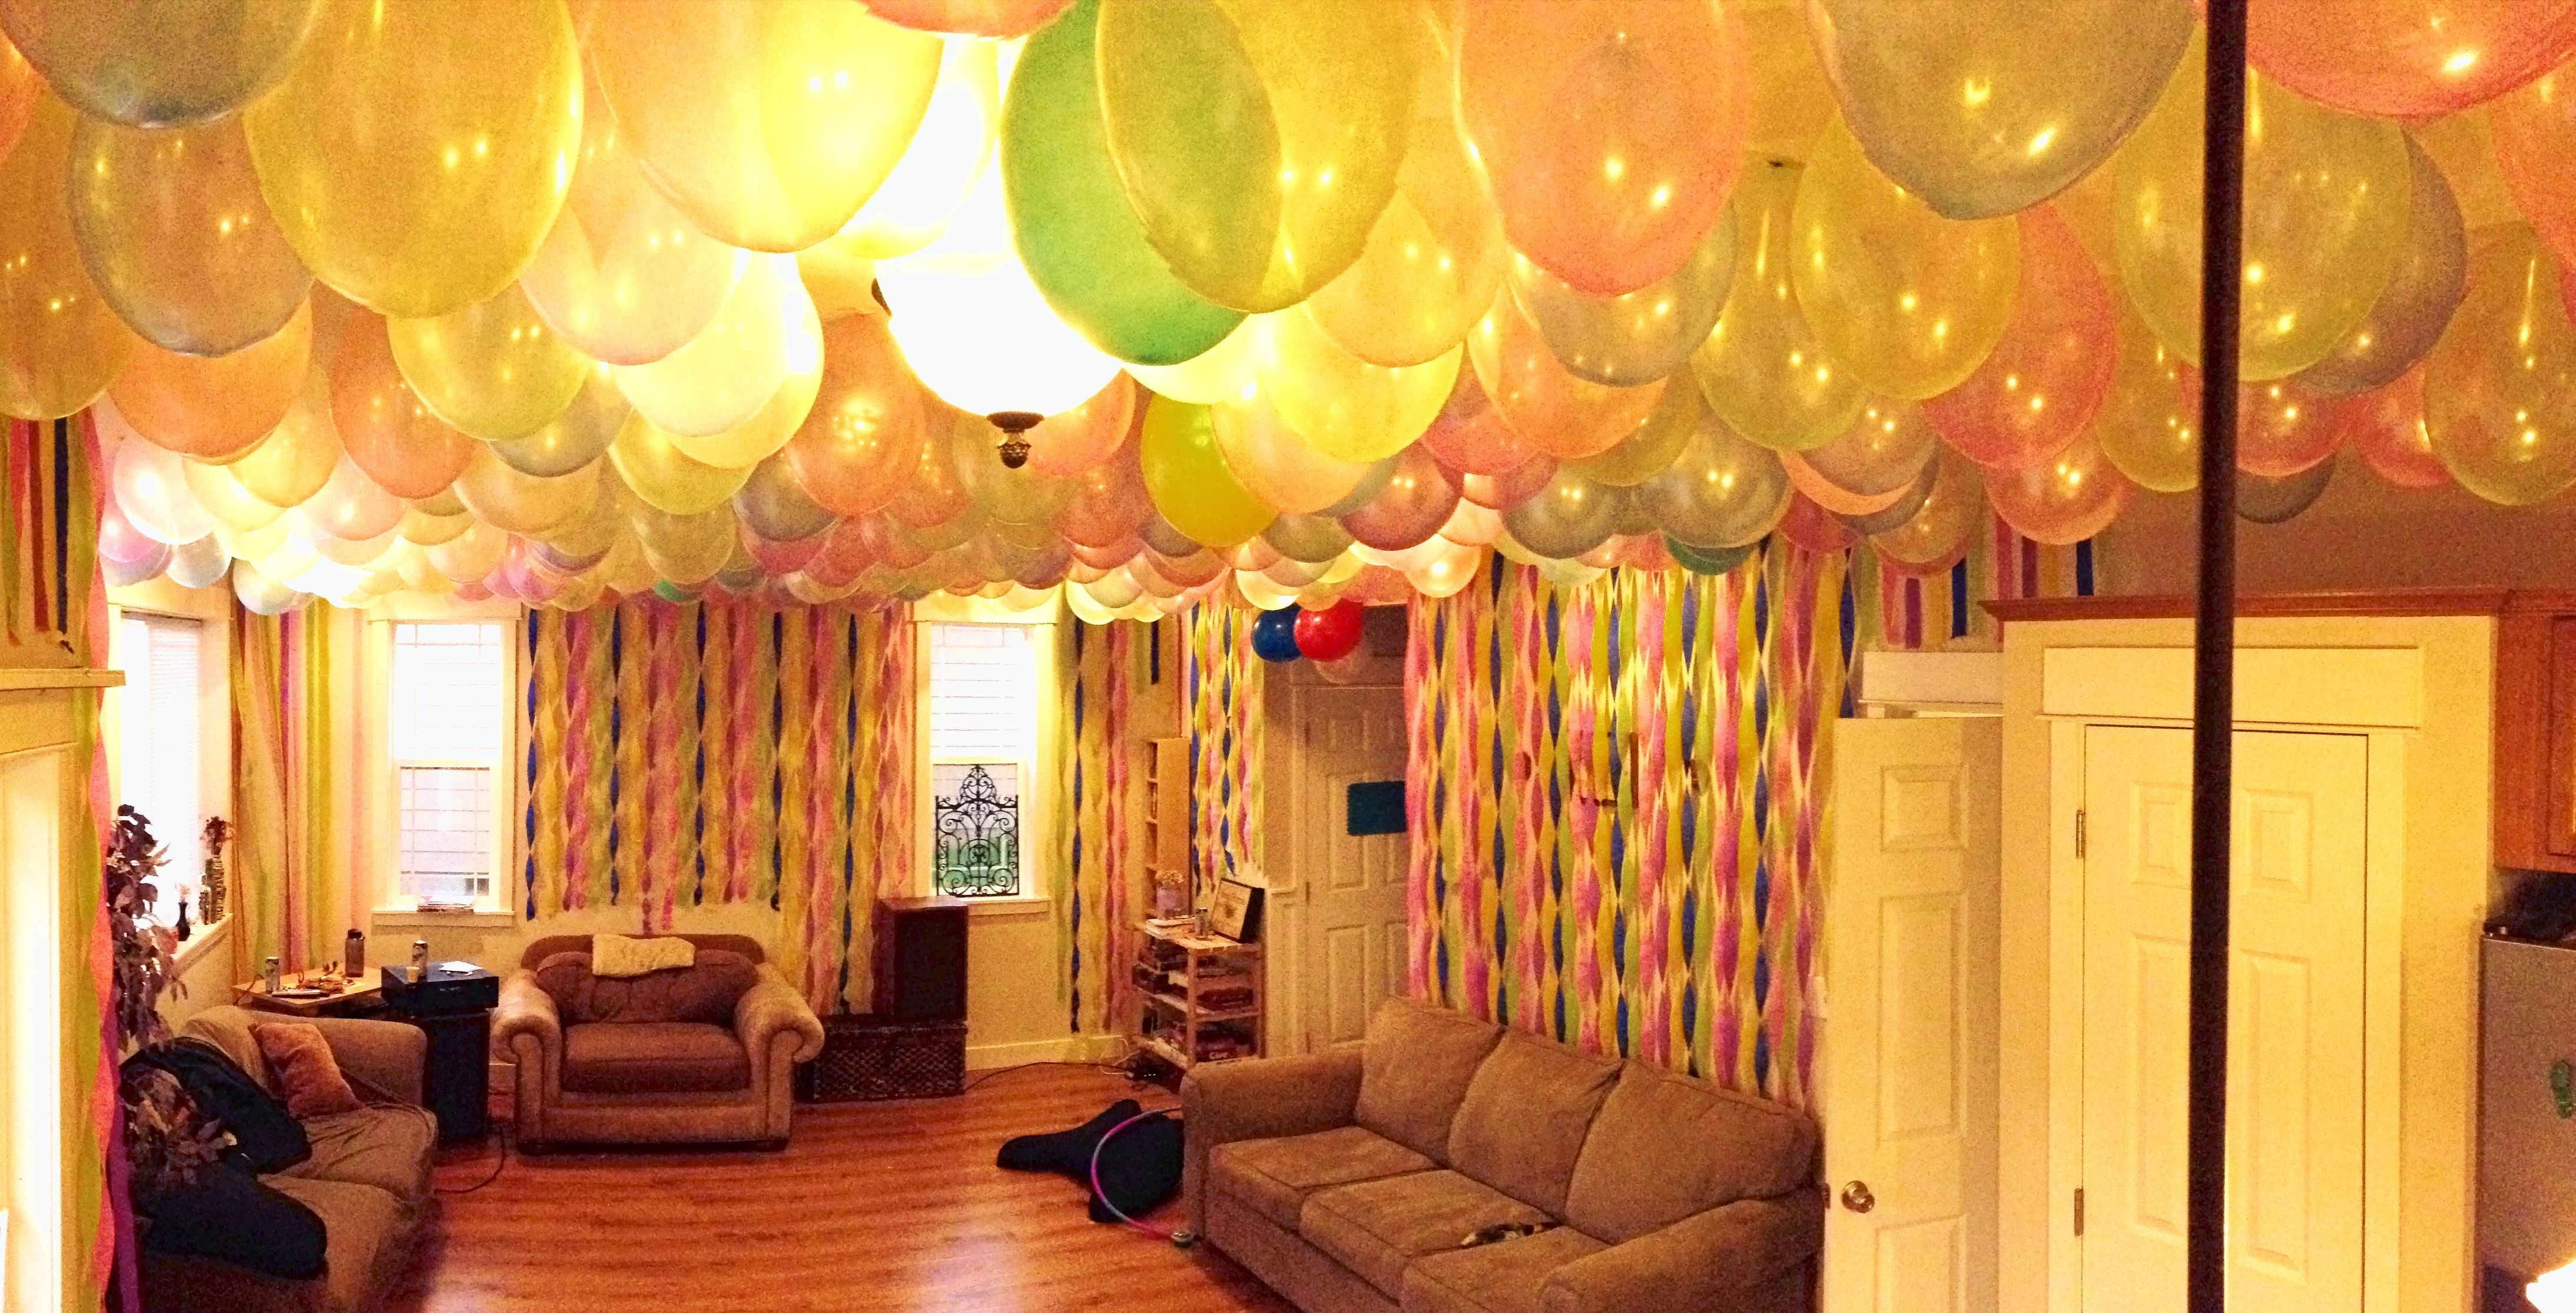 Party decorations balloons on ceiling and streamers